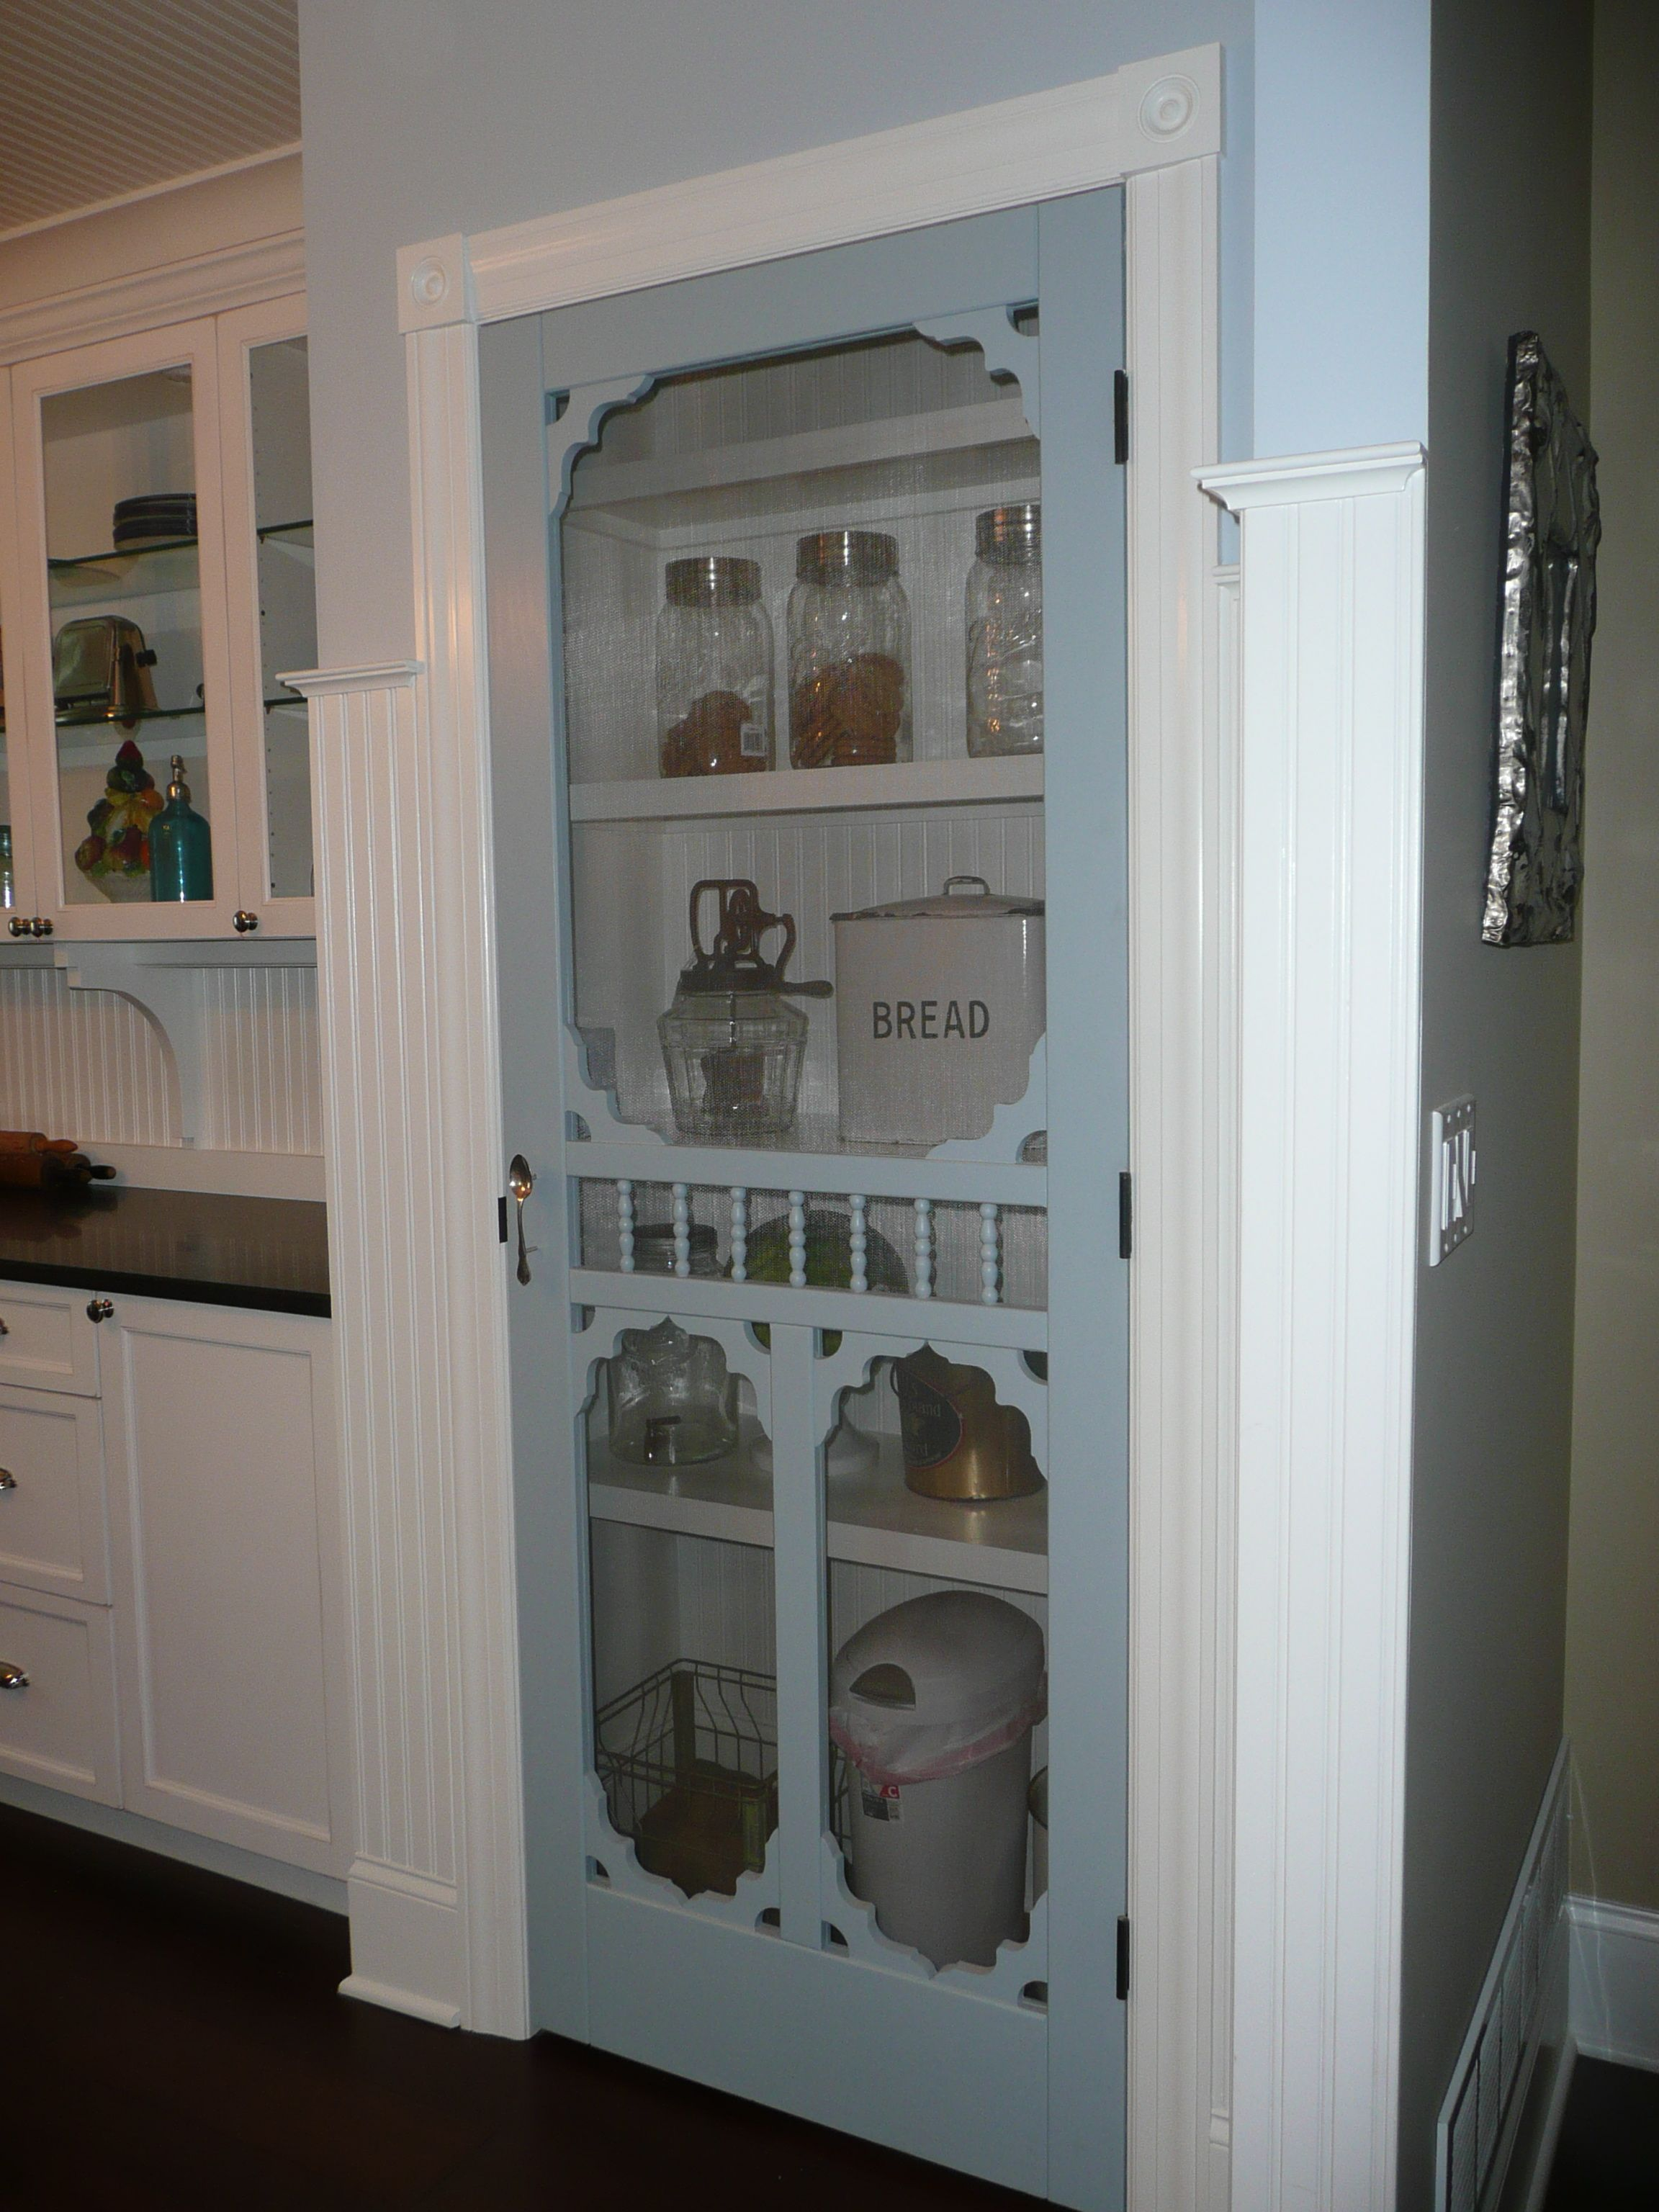 Screen door pantry in my farmhouse kitchen. I WOULD SO DO THIS IF MY PANTRY